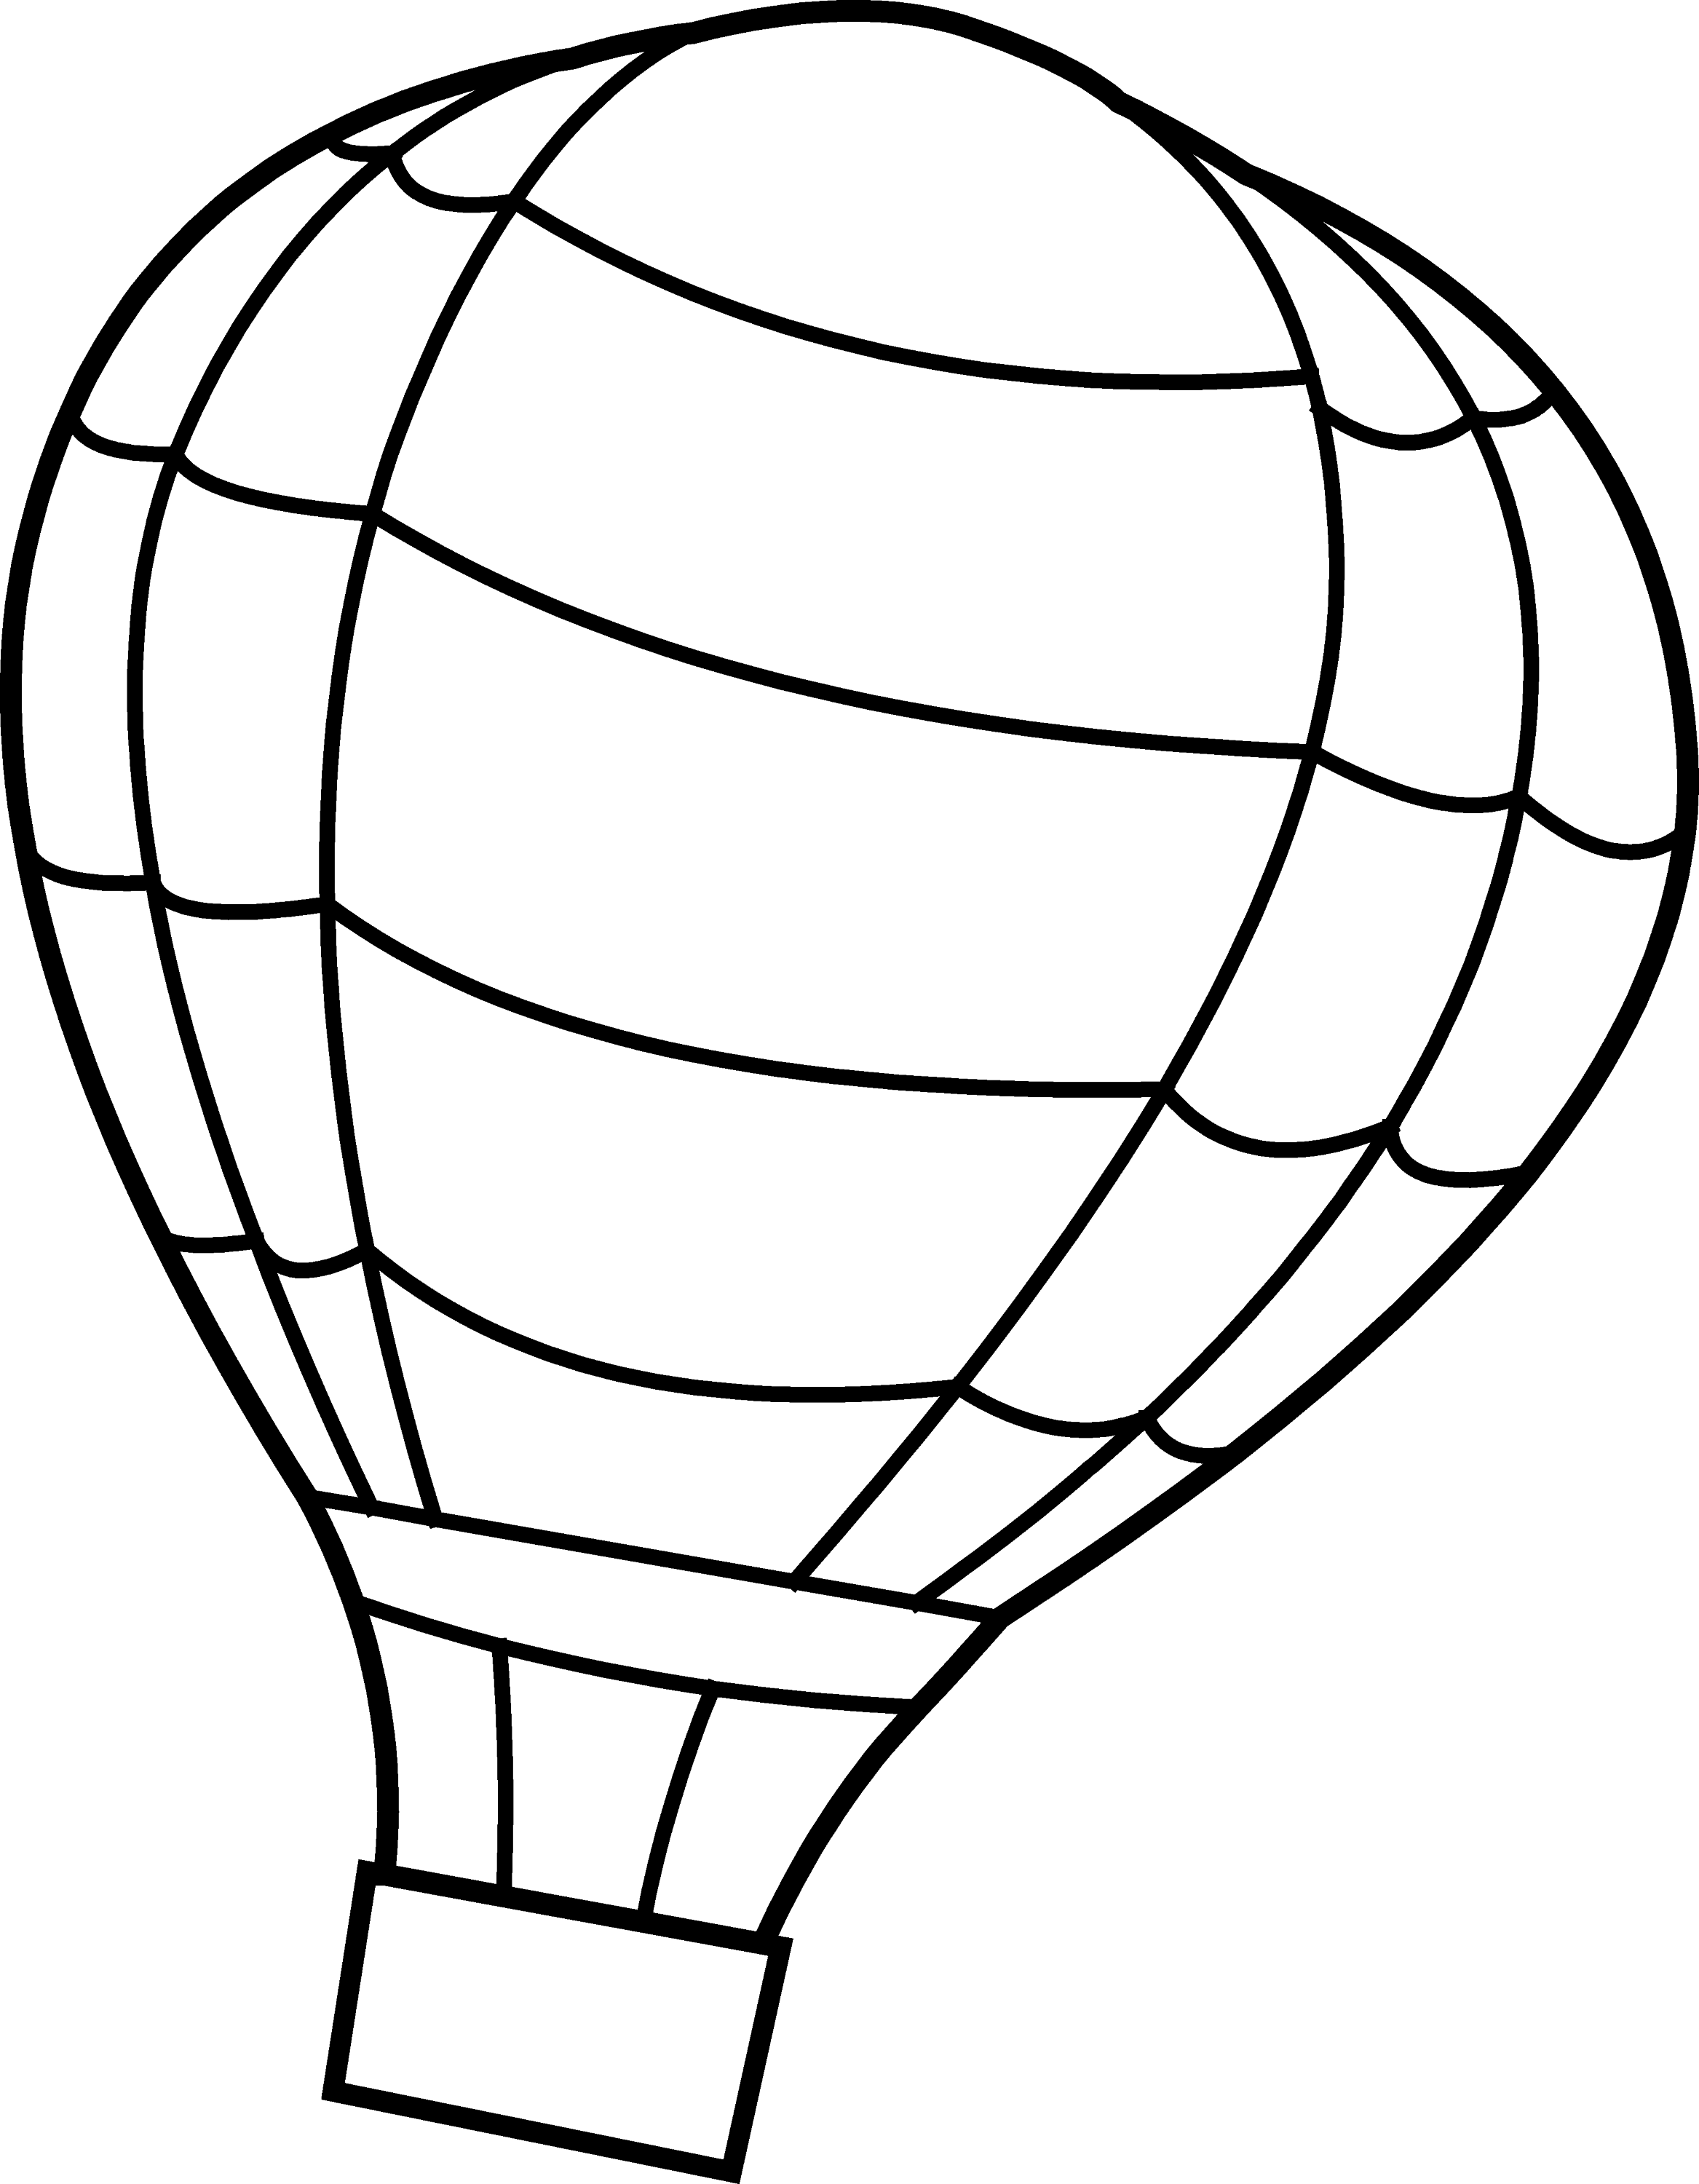 air balloon coloring pages - photo#26